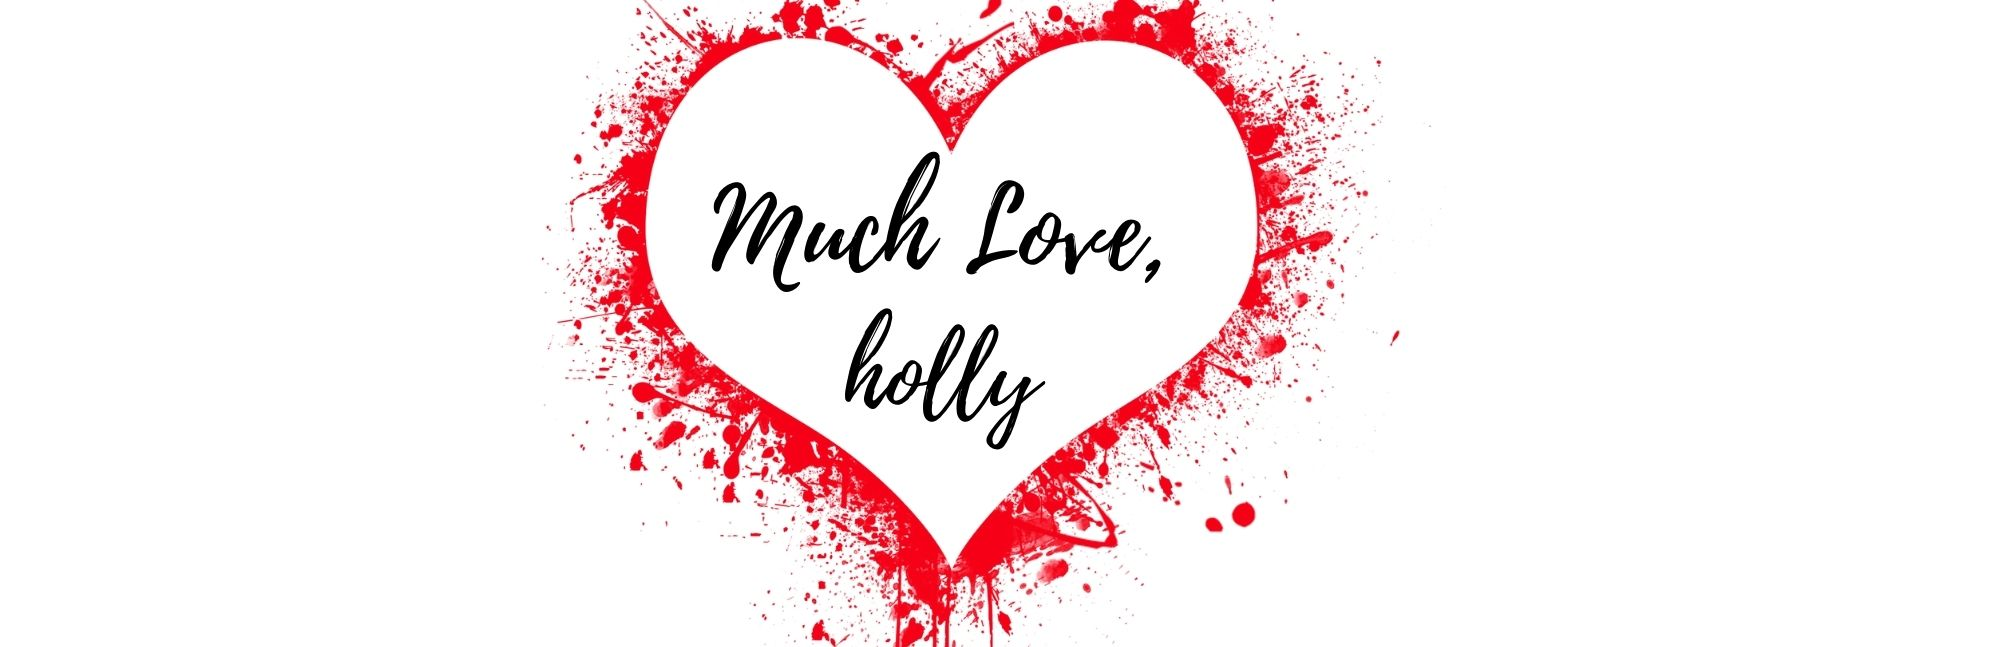 Relationships and Health - Holly Roylance Signature